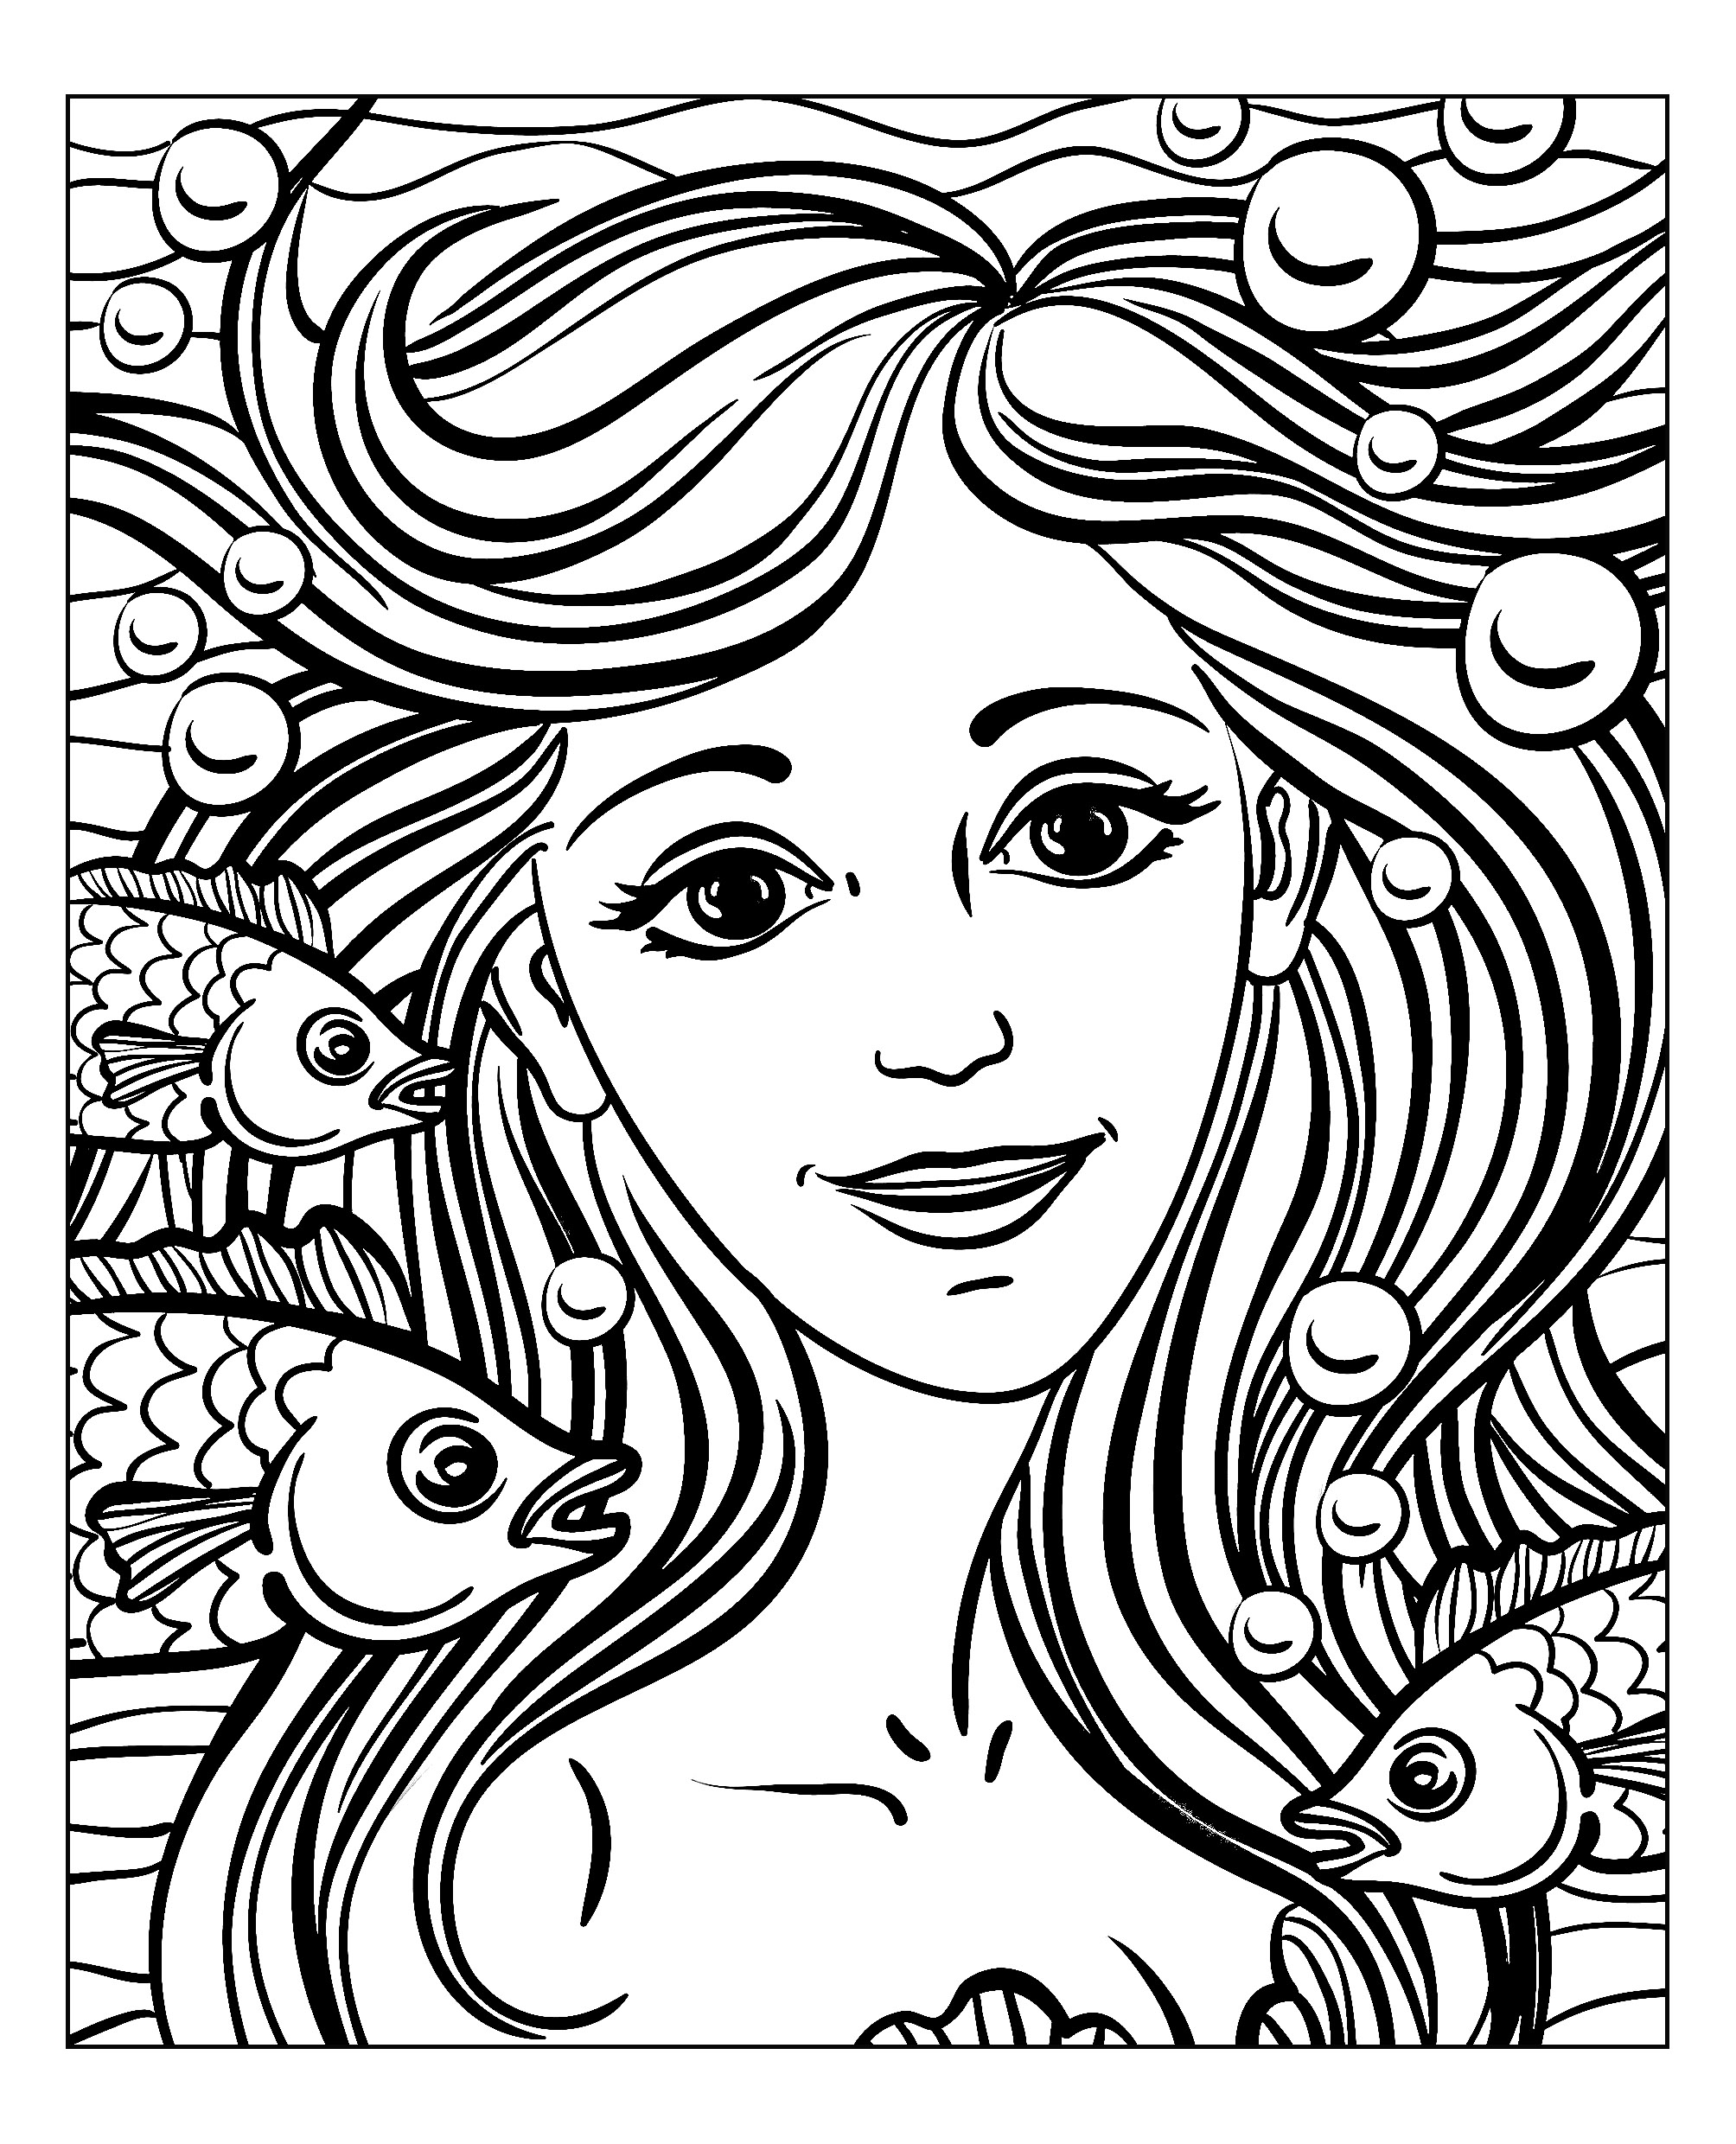 face coloring pages adults - photo#26